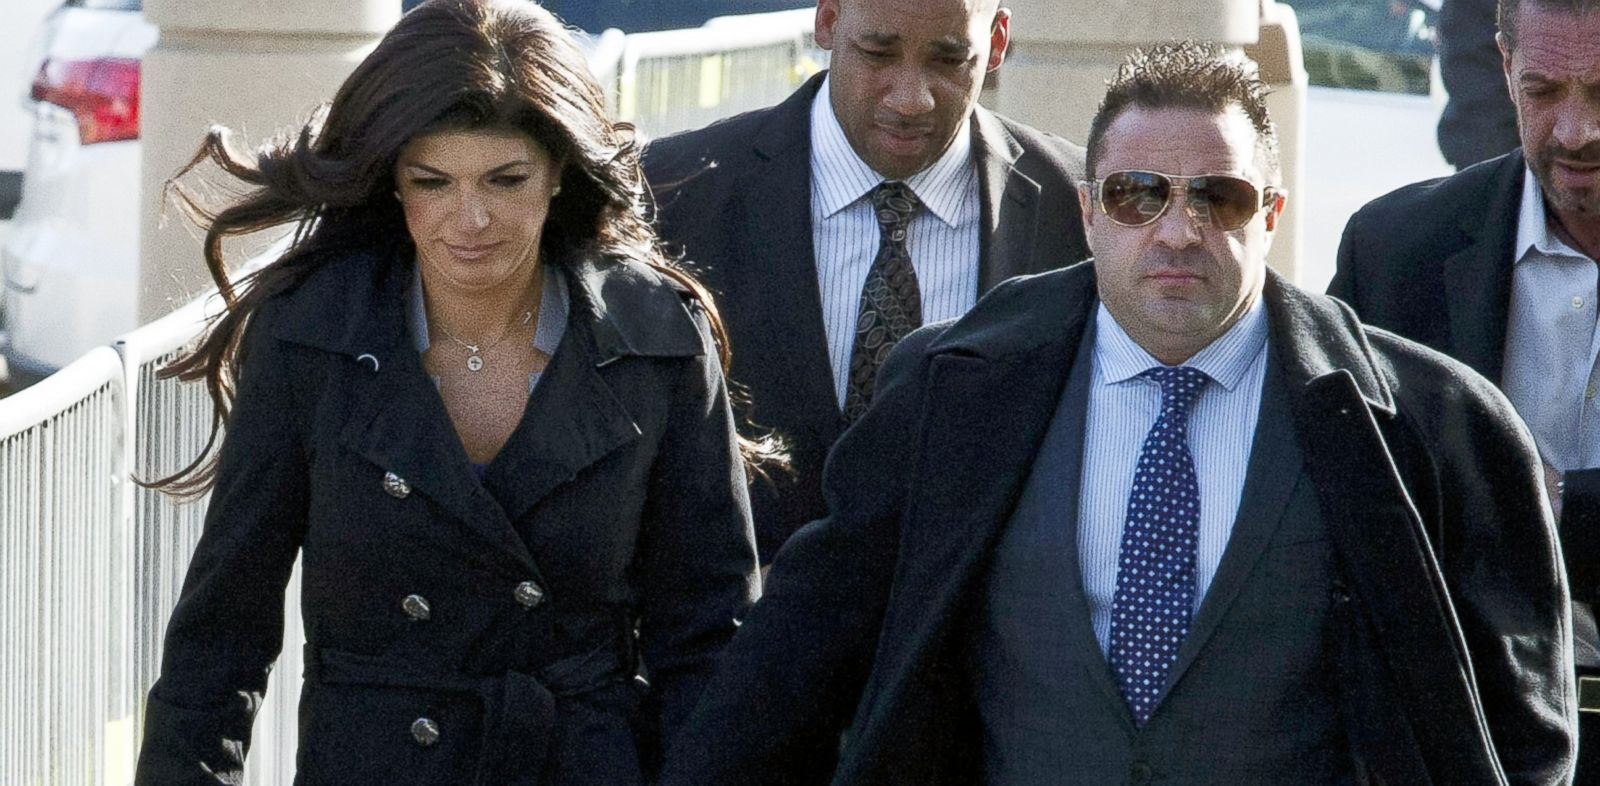 """PHOTO: Giuseppe """"Joe"""" Giudice and his wife, Teresa Giudice walk out of the Martin Luther King, Jr. Courthouse after a court appearance, Nov. 20, 2013, in Newark, N.J."""